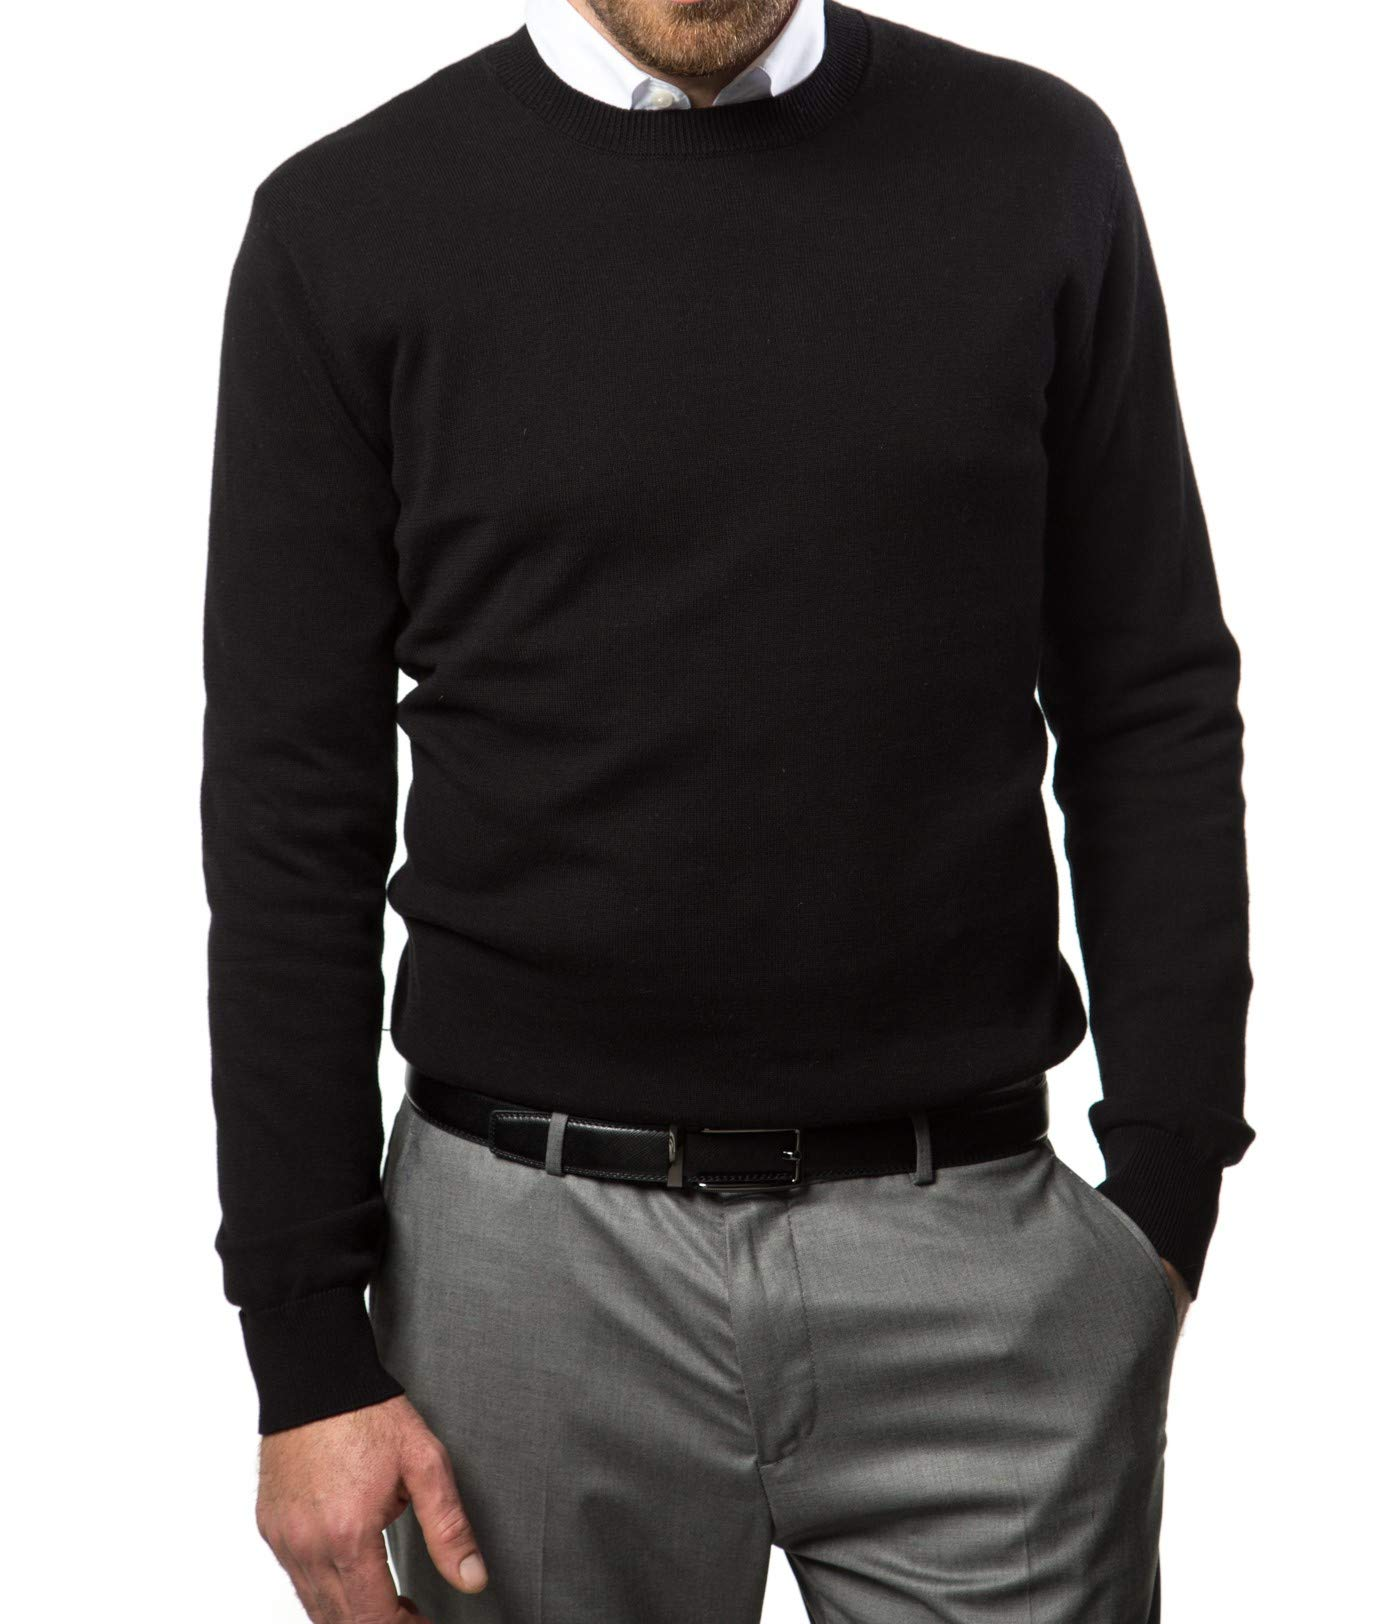 637f541f5 Marino Cotton Sweaters for Men - Lightweight Crewneck Men s Pullover  product image